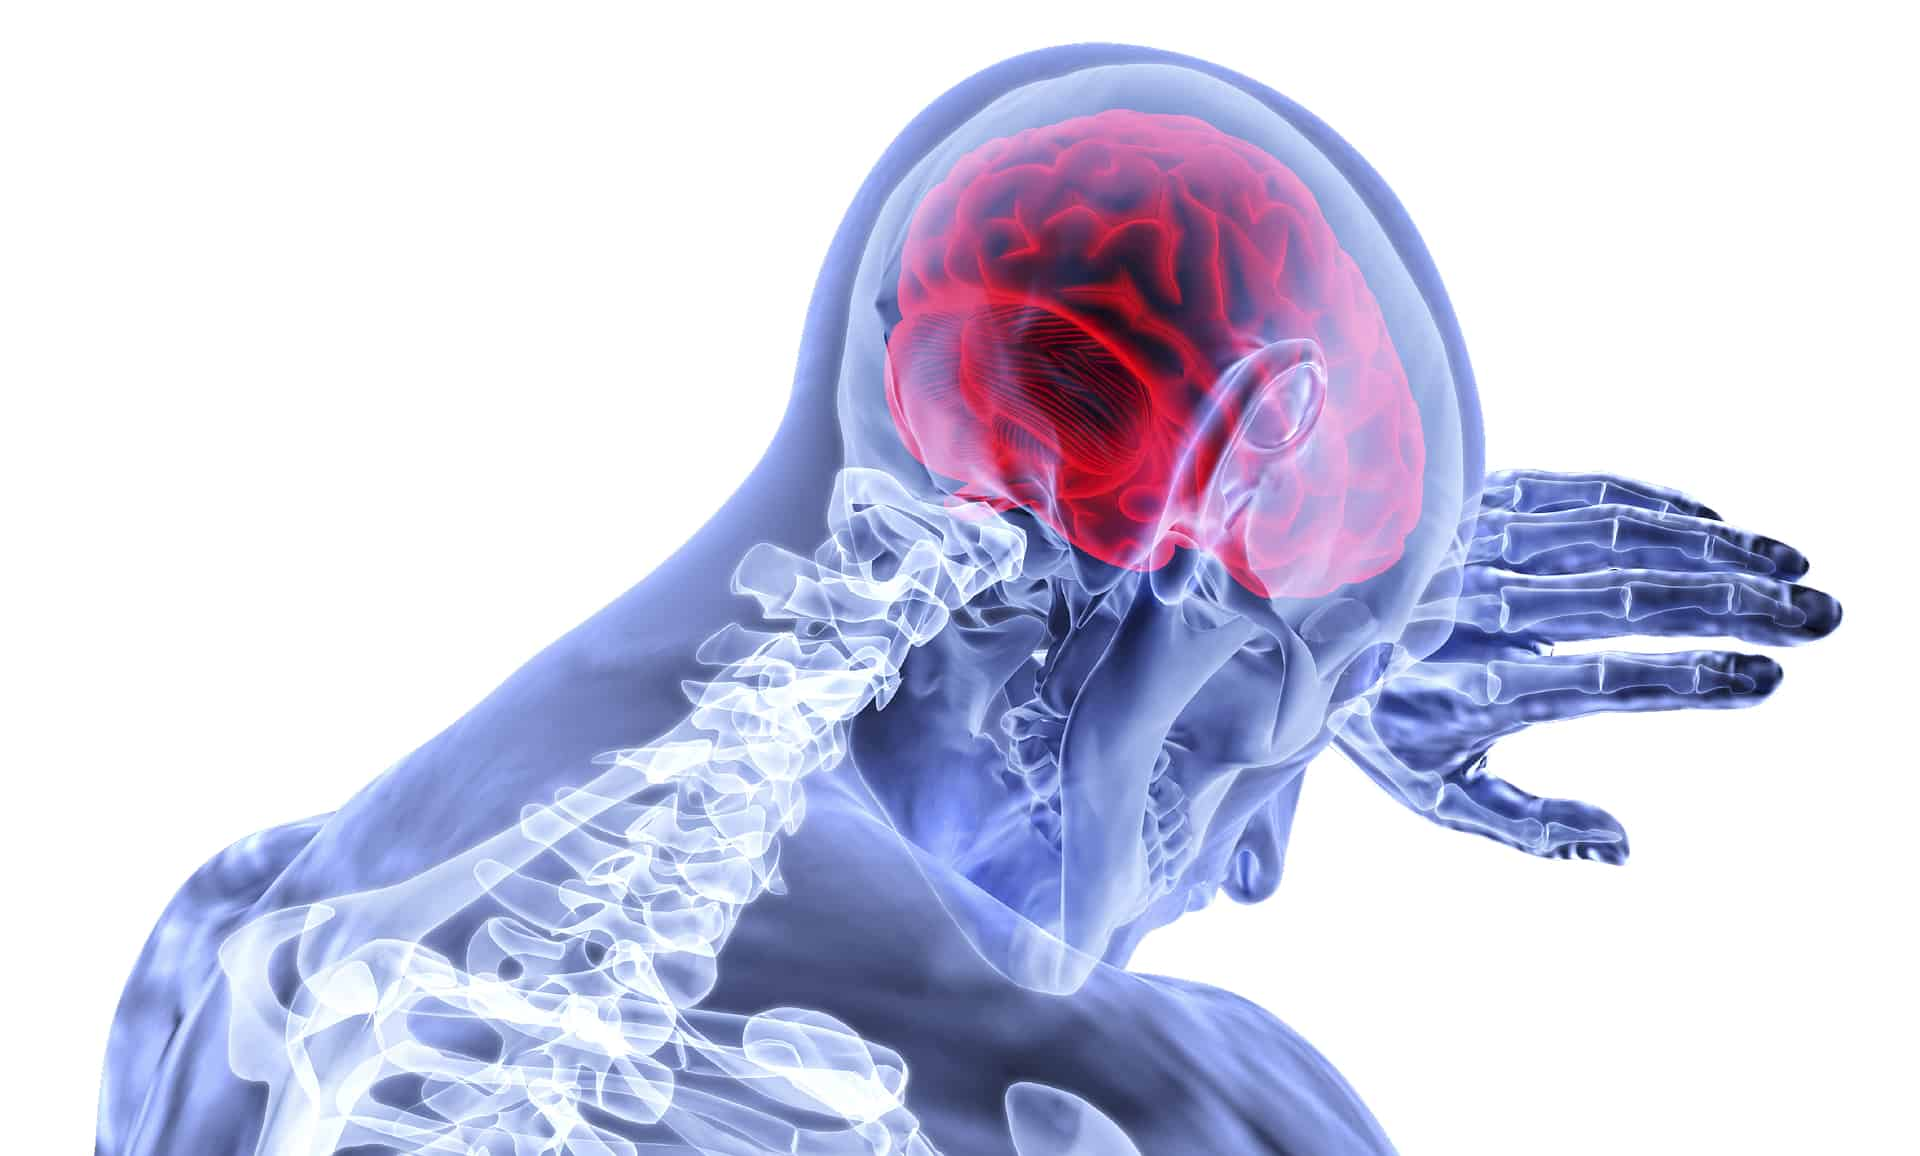 Brain-Injury-Traumatic-Skull-Concussion-Fracture-Hemorrhaging-Bleeding-Post-Concussion-Syndrom-PCS-Personal-Injury-Attorney-Lawyer-Money-Settlement-Pain-Injury